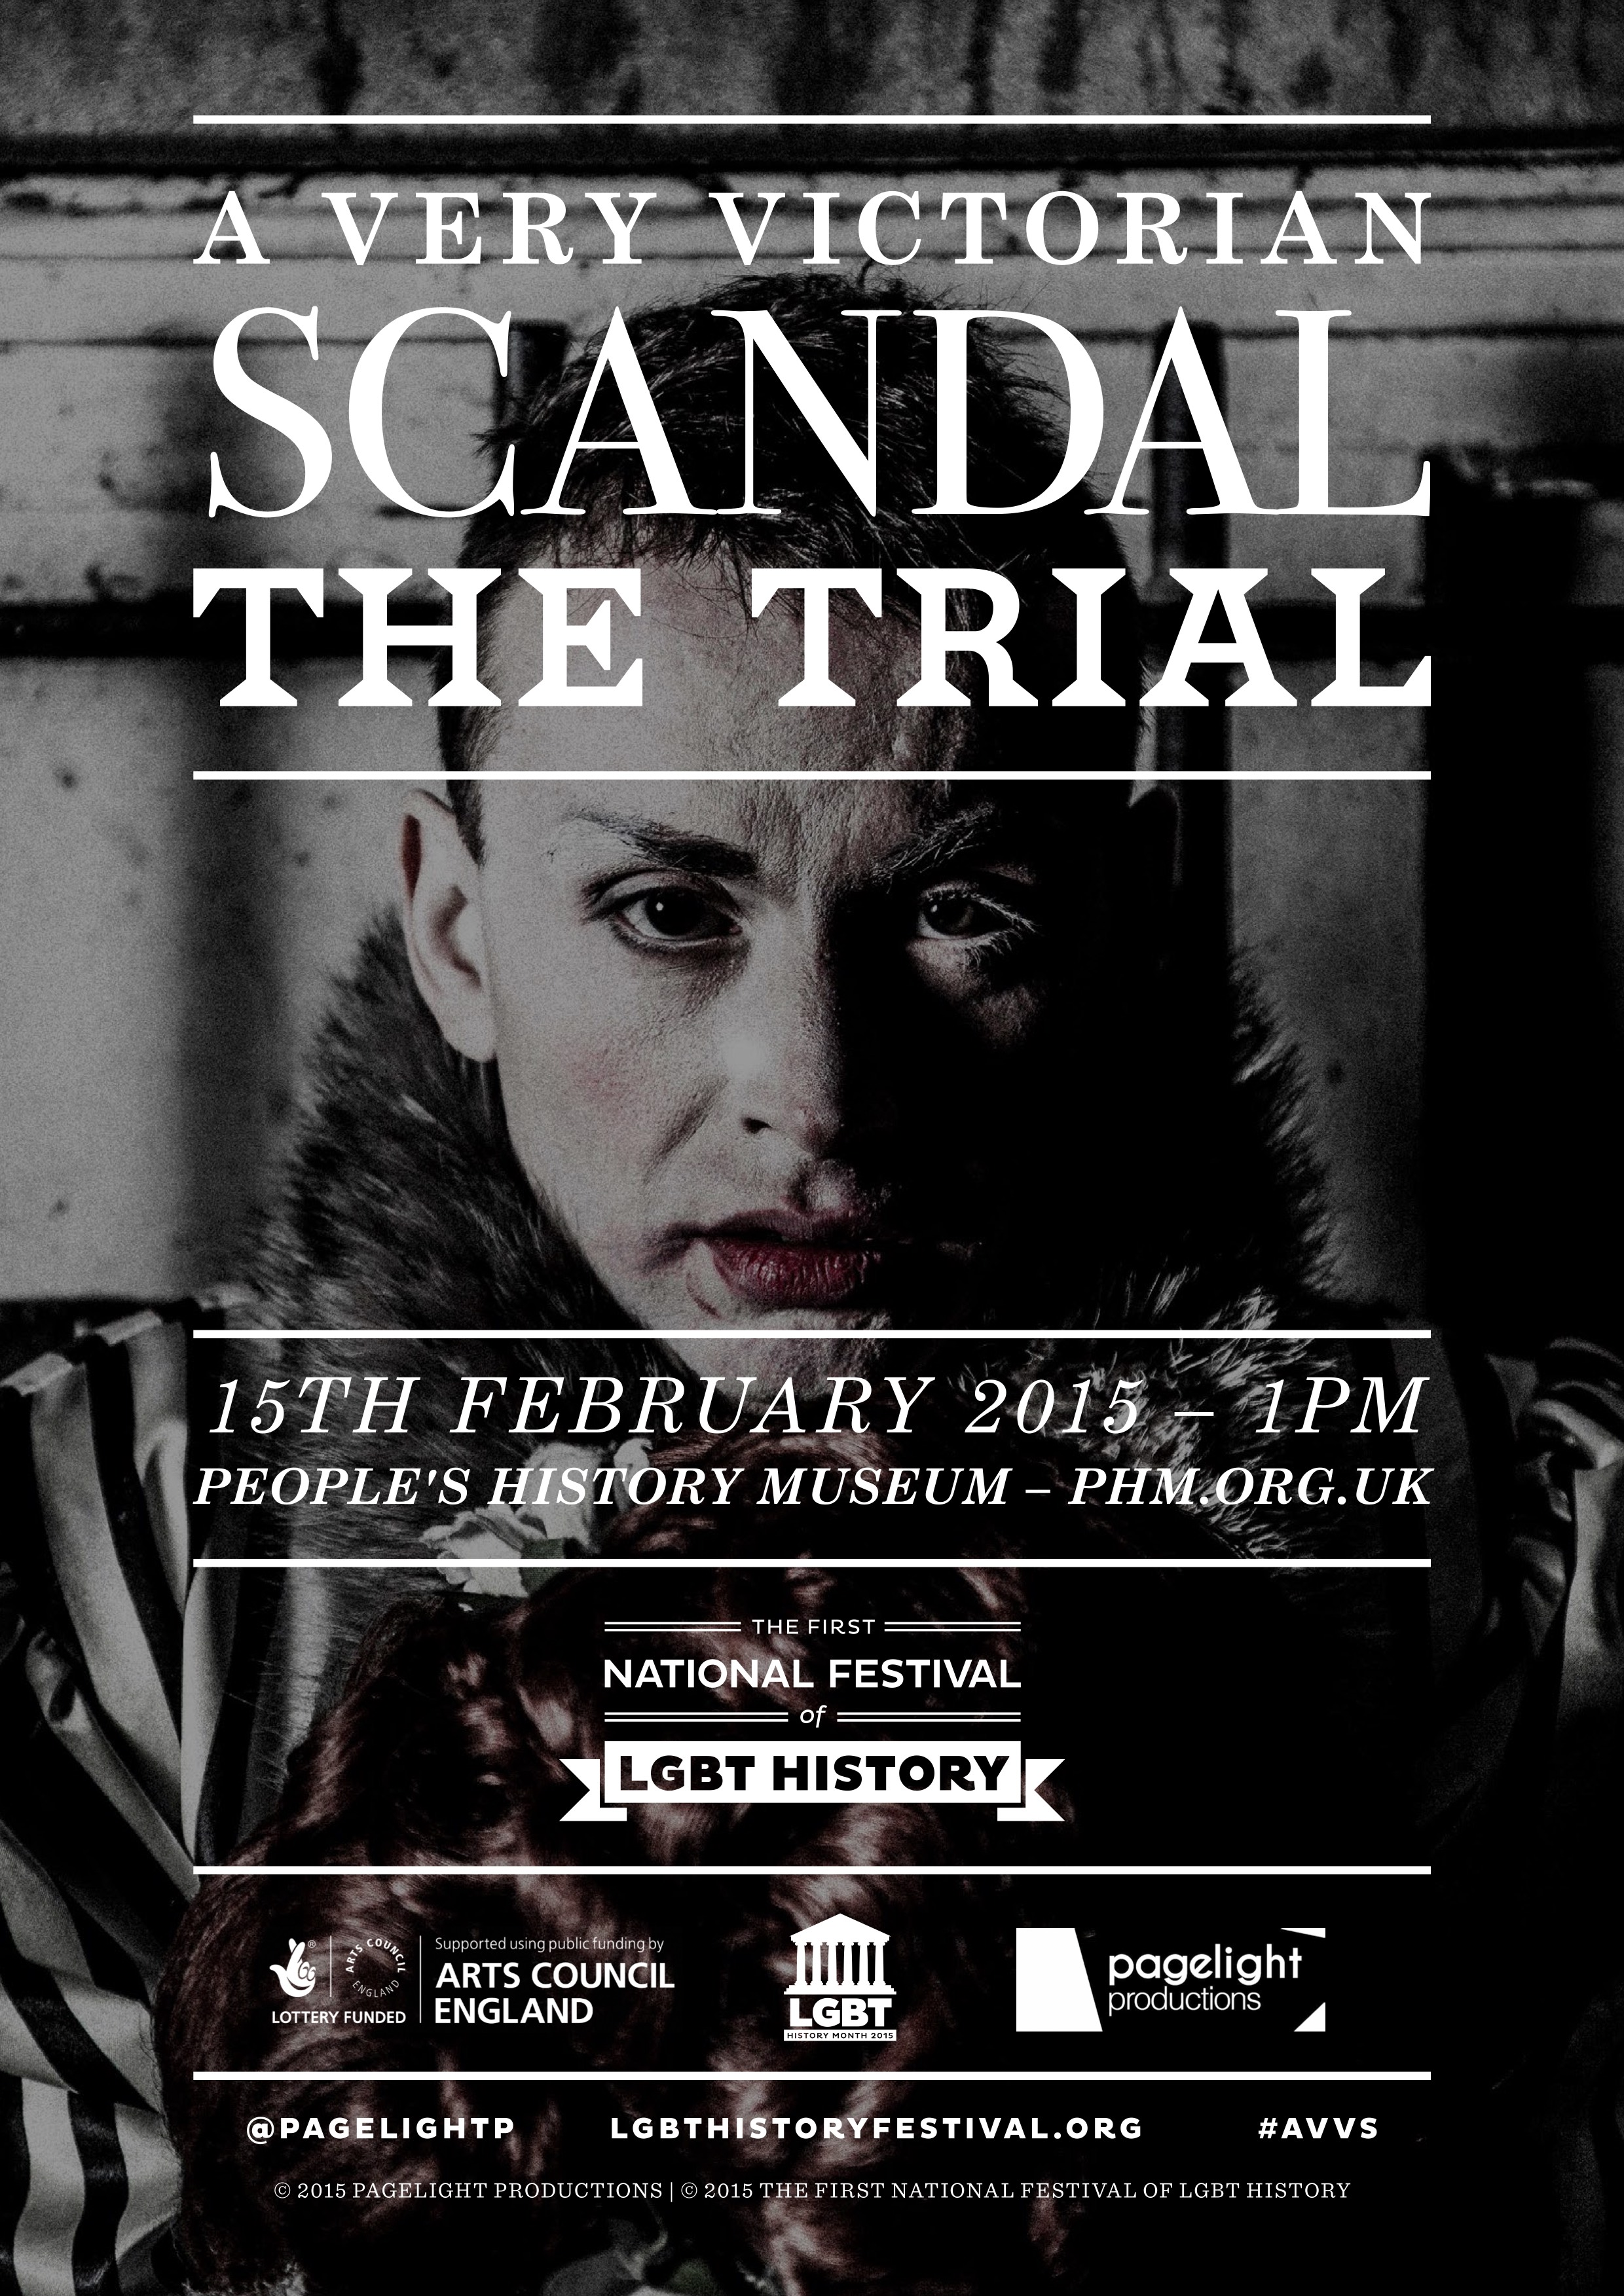 THE POSTER FOR AVVS: THE TRIAL FEATURING DAN WALLACE (PHOTO CREDIT: DANIEL MEE)